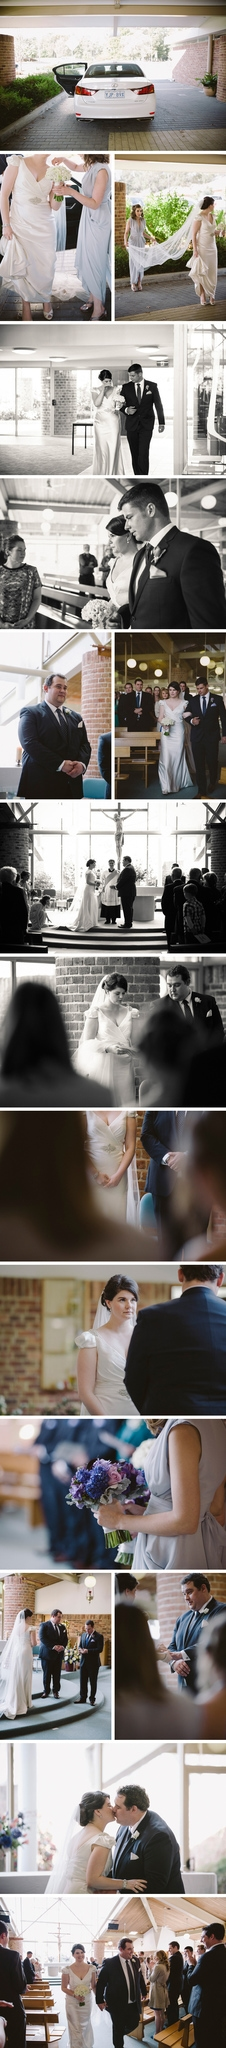 Thorson Photography Canberra Wedding